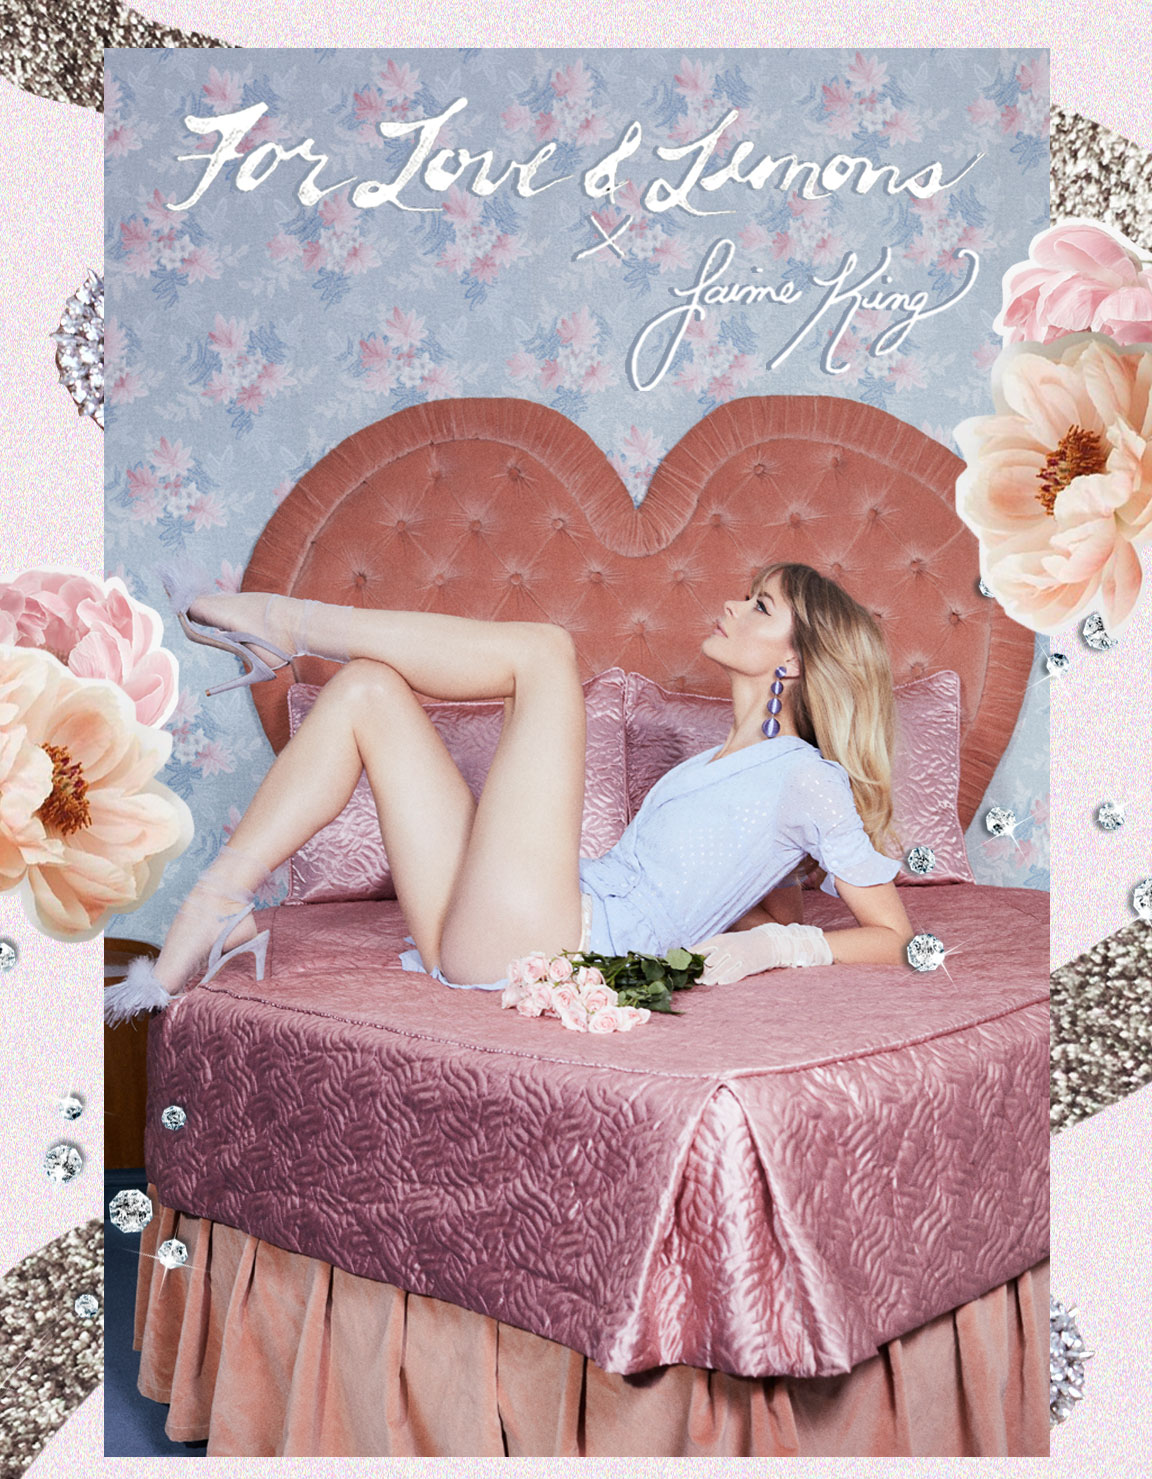 For Love & Lemons x Jaime King Shop the Collection